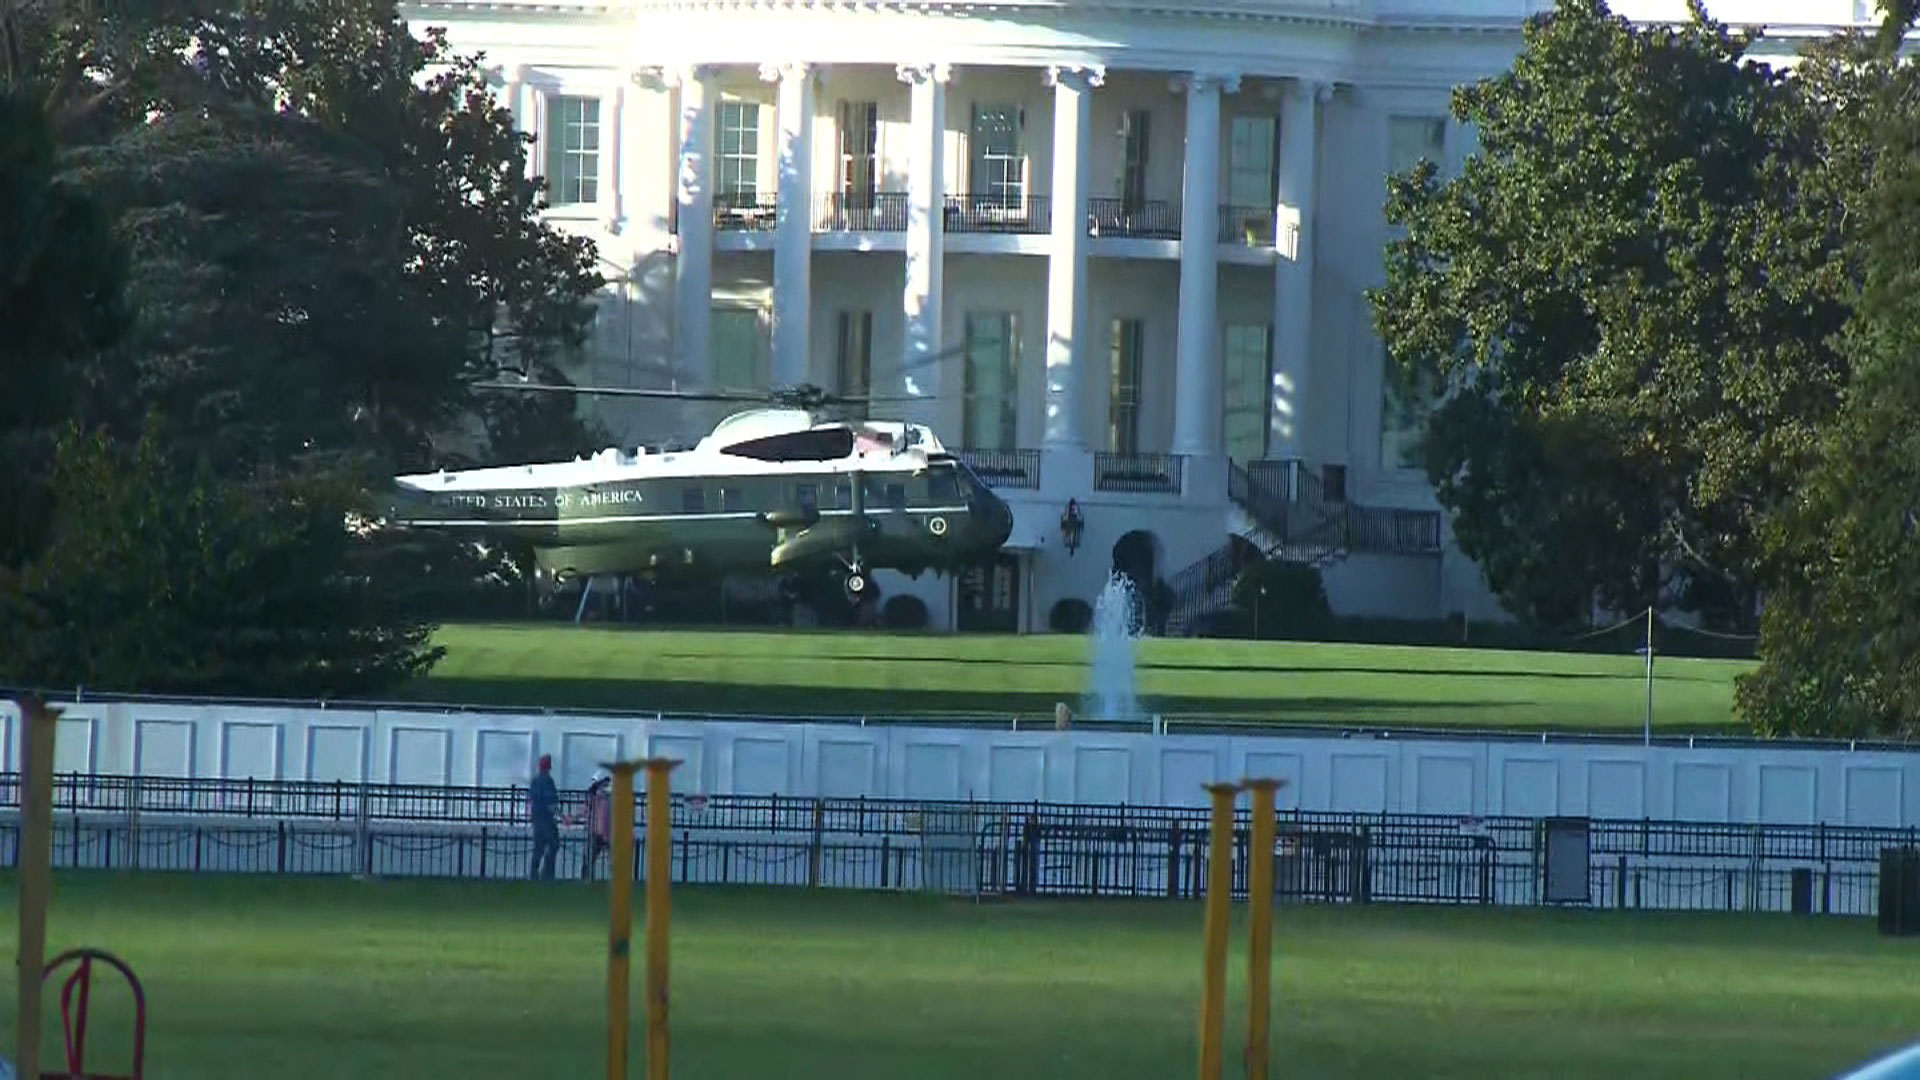 Marine One lands on the lawn of the White House on October 2 in Washington, DC.